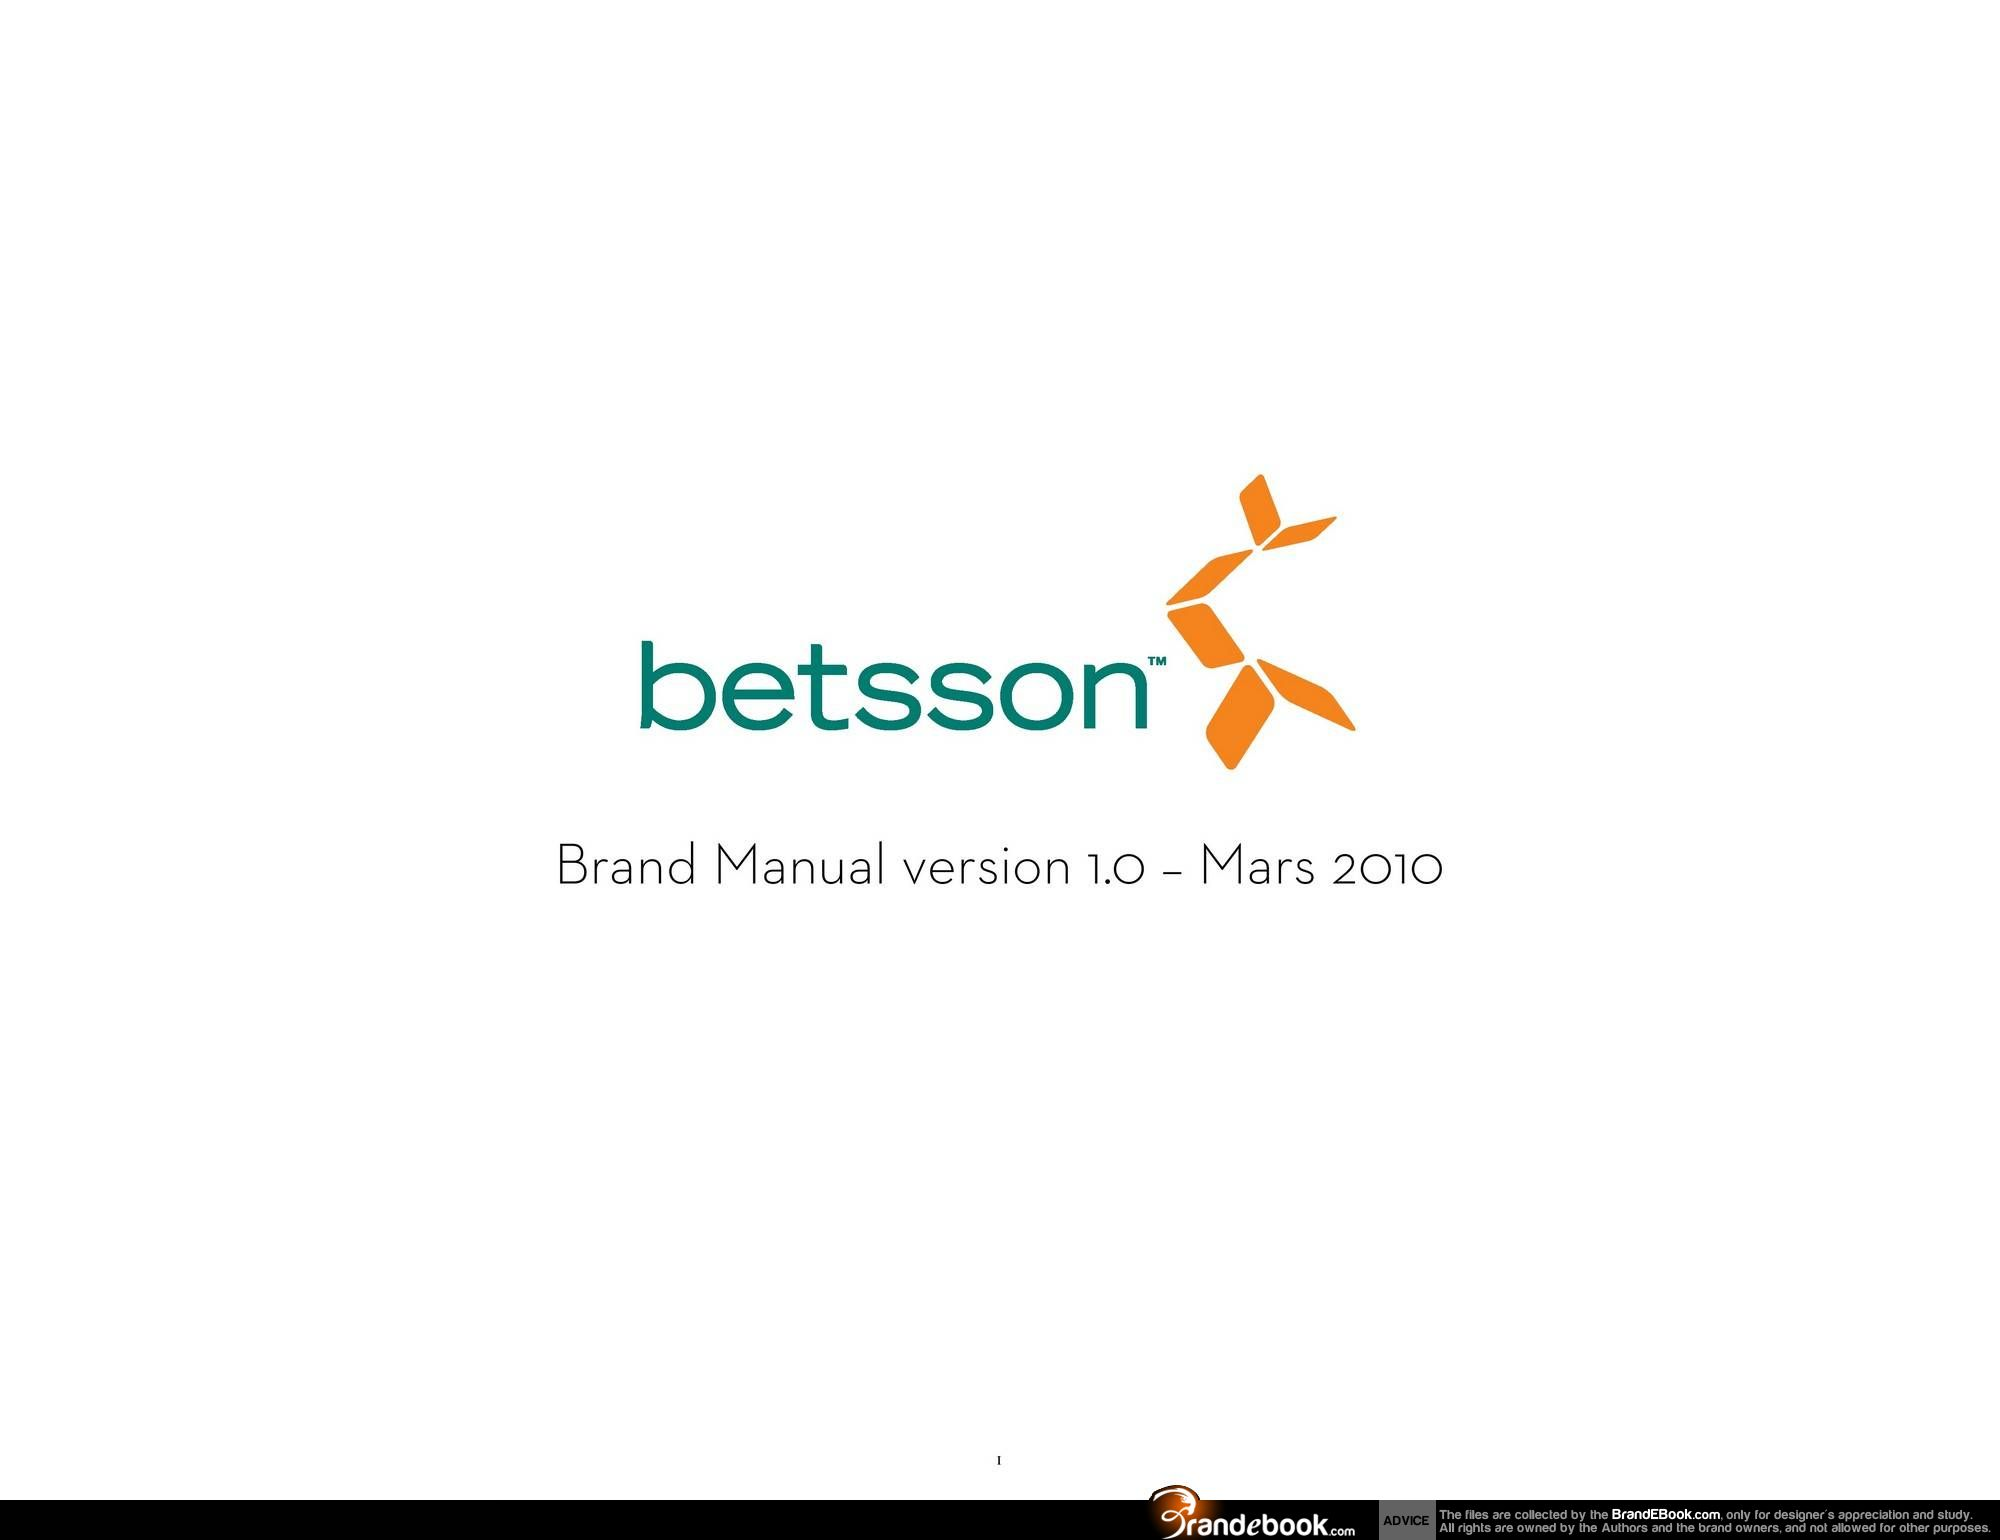 betsson download